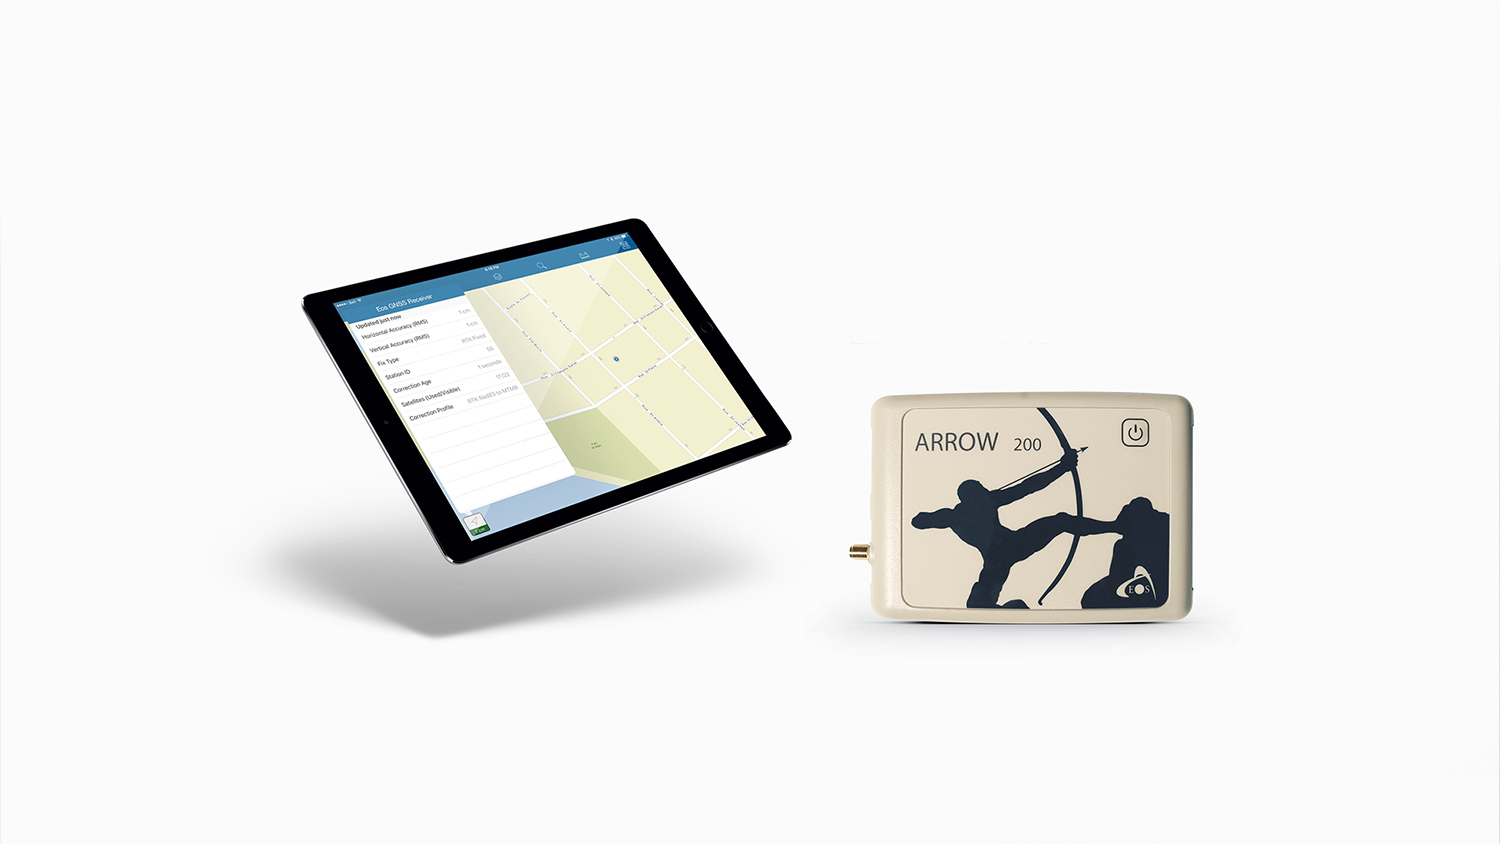 ArcGIS Collector 10.4 supports Arrow high accuracy GNSS receivers submeter centimeter mapping